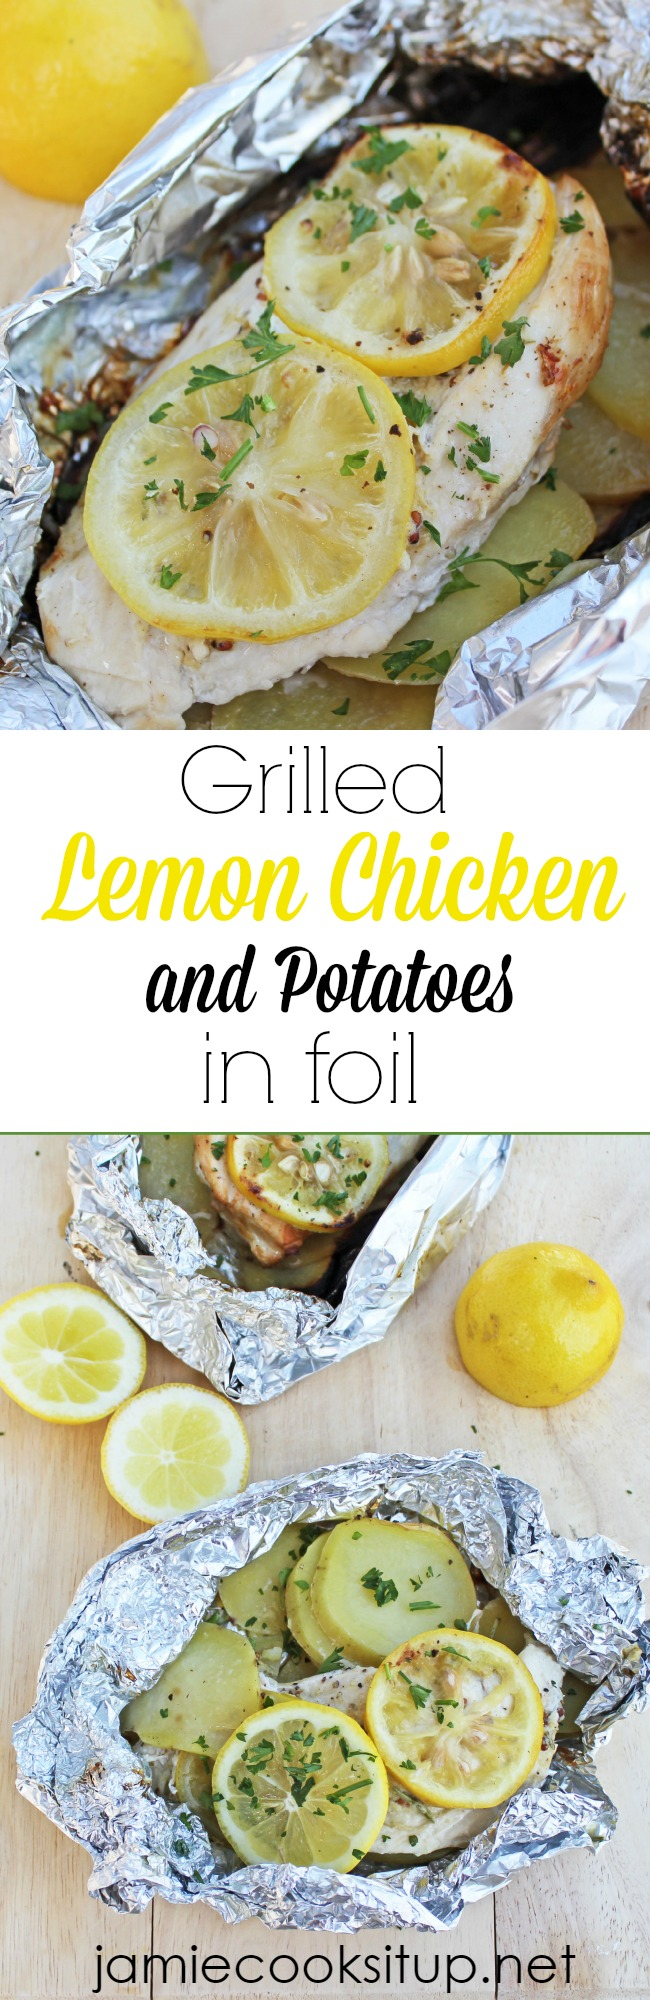 Grilled Lemon Chicken and Potatoes in Foil from Jamie Cooks It Up